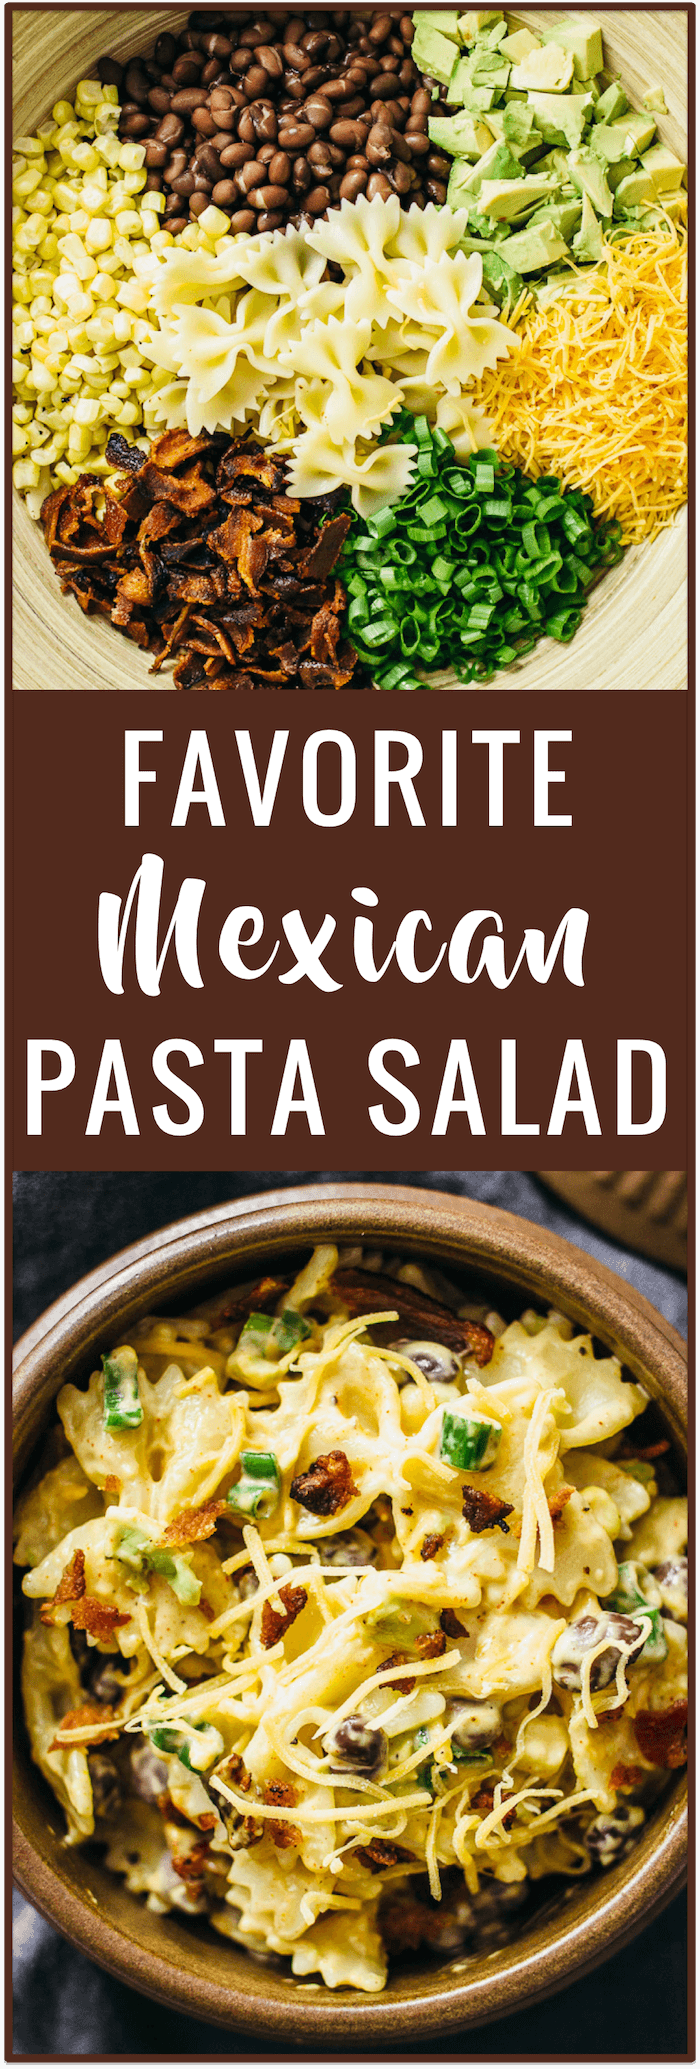 Try out my favorite Mexican pasta salad recipe loaded with delicious ingredients like avocado, cheddar cheese, corn, beans, and extra crispy bacon -- all tossed together in a slightly spicy mayo dressing.